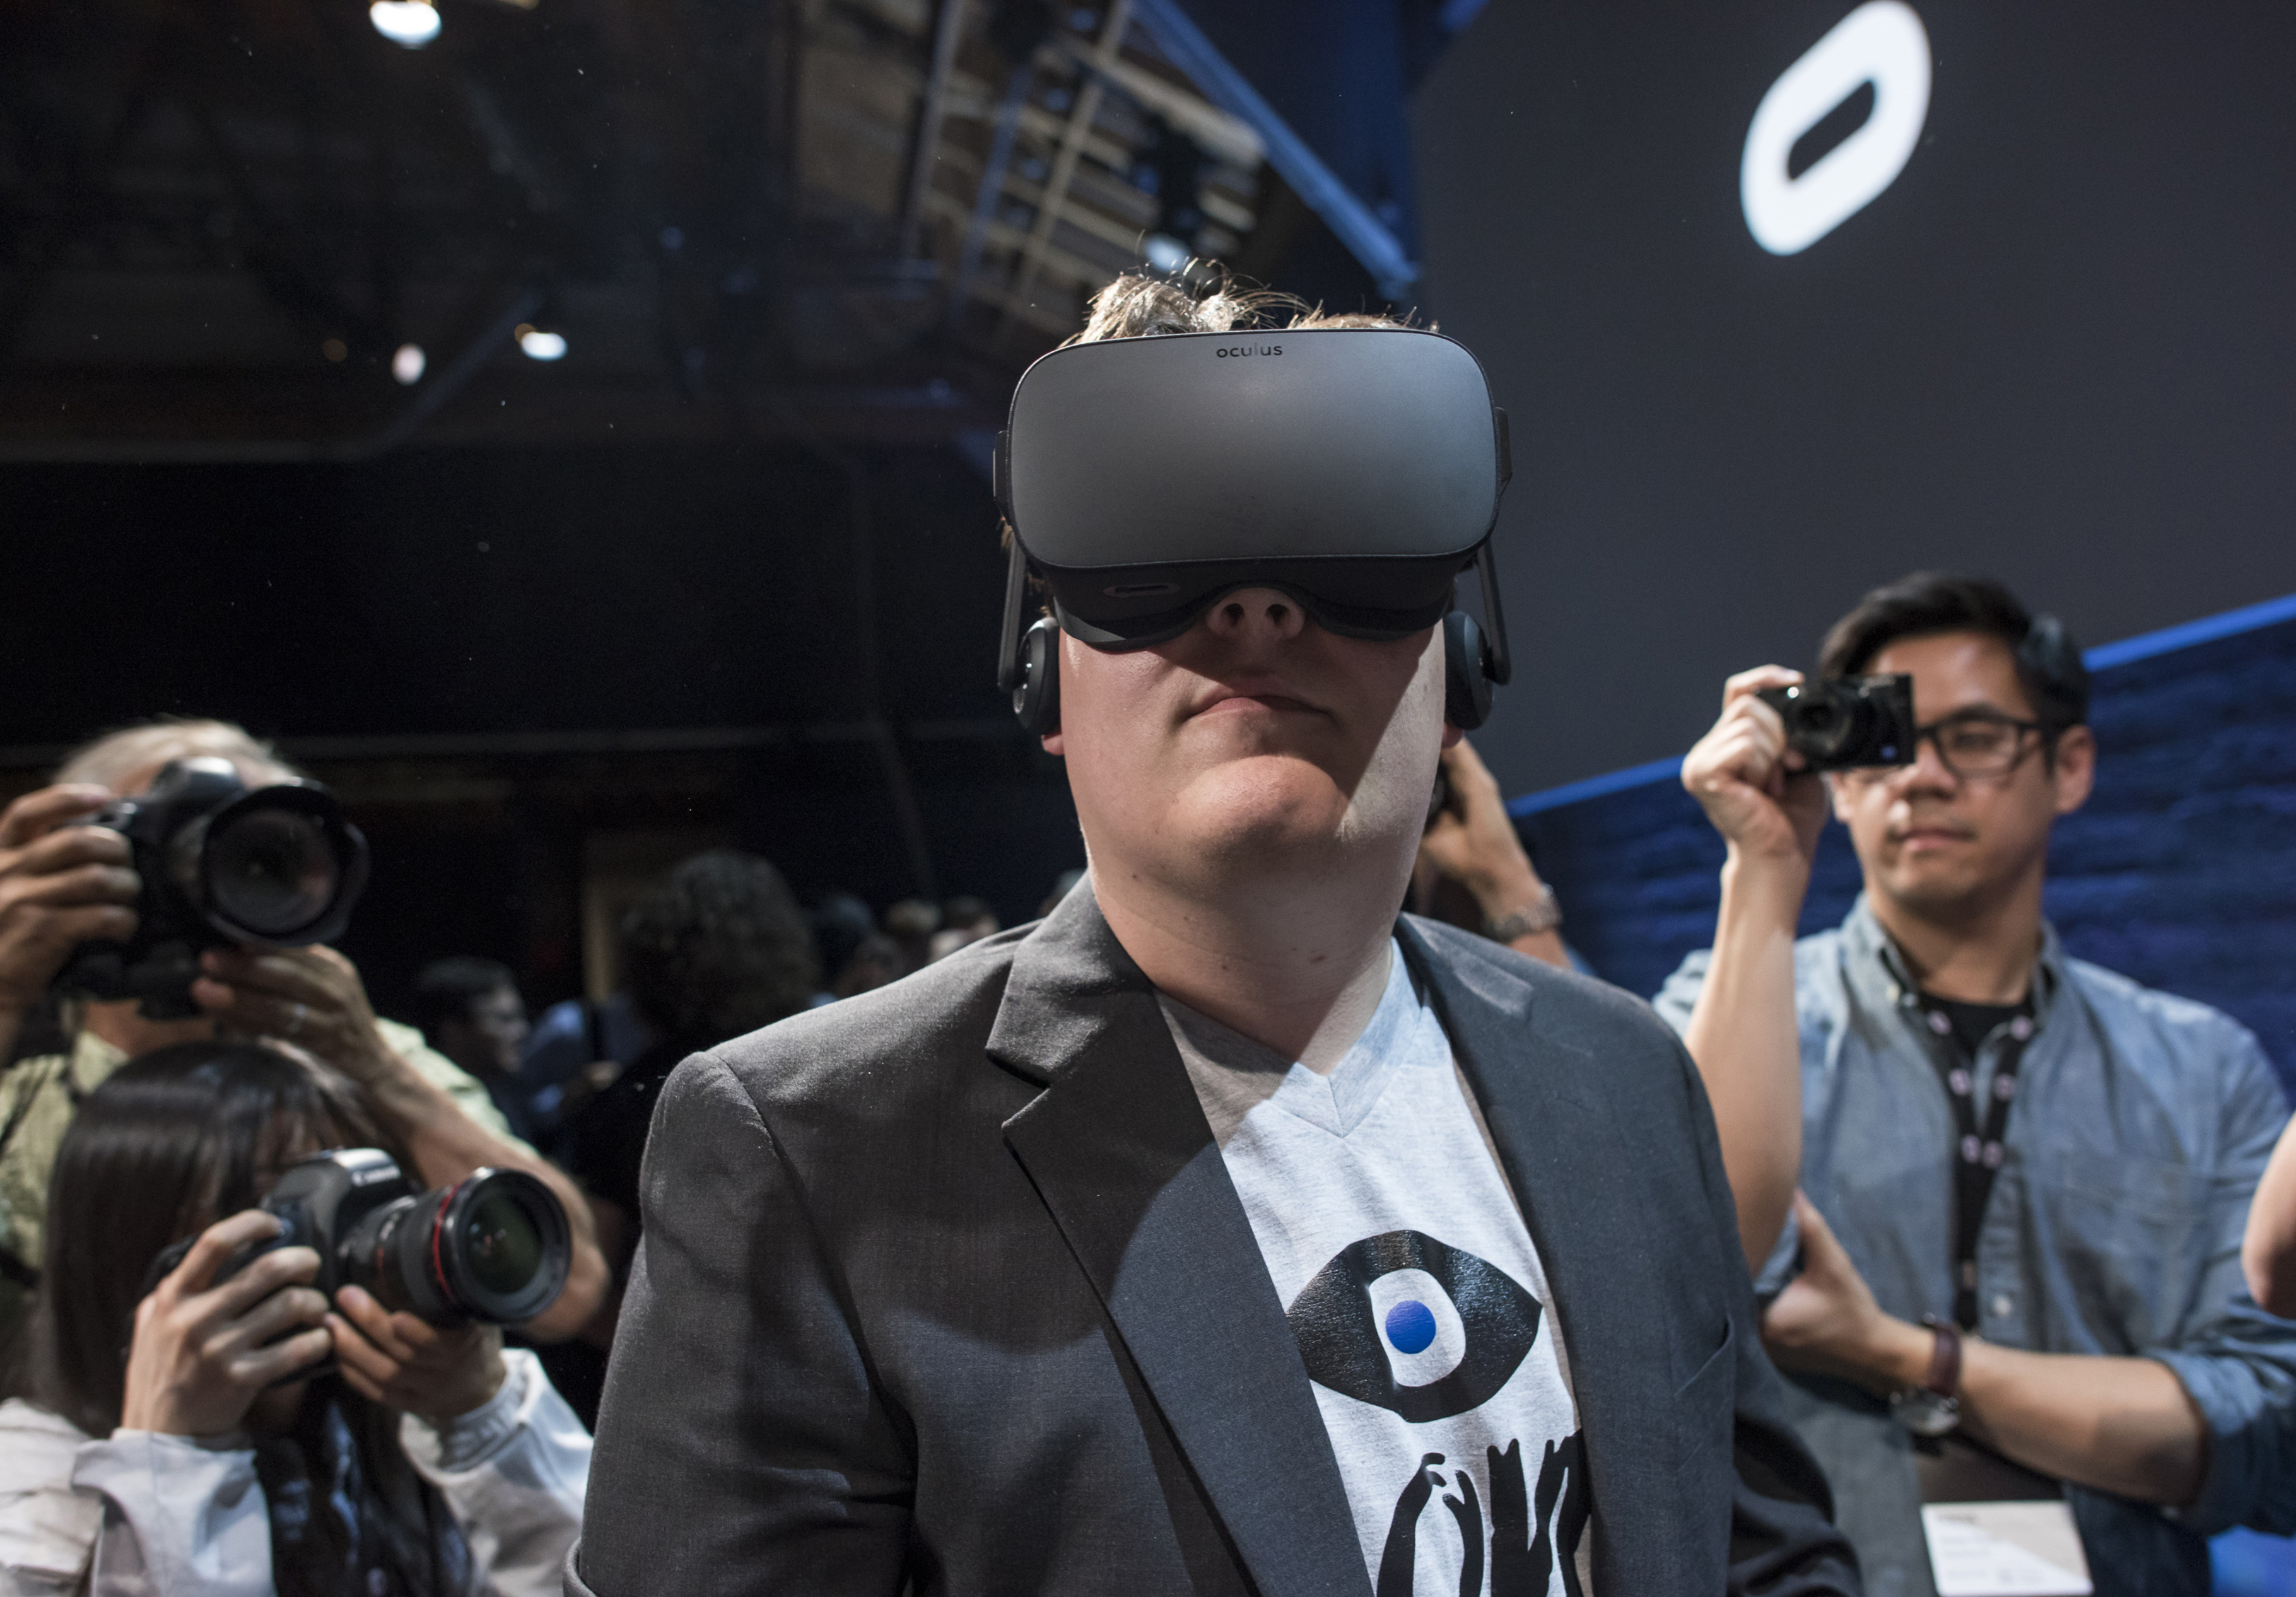 """Inc. and creator of the Oculus Rift, demonstrates the new Oculus Rift headset to the media during the Oculus VR Inc. """"Step Into The Rift"""" event in San Francisco, California, U.S., on Thursday, June 11, 2015. Facebook Inc.'s Oculus virtual-reality headsets will work with Microsoft Corp.'s Windows 10 and use the software maker's wireless Xbox game controller. Photographer: David Paul Morris/Bloomberg *** Local Caption *** Palmer Luckey"""